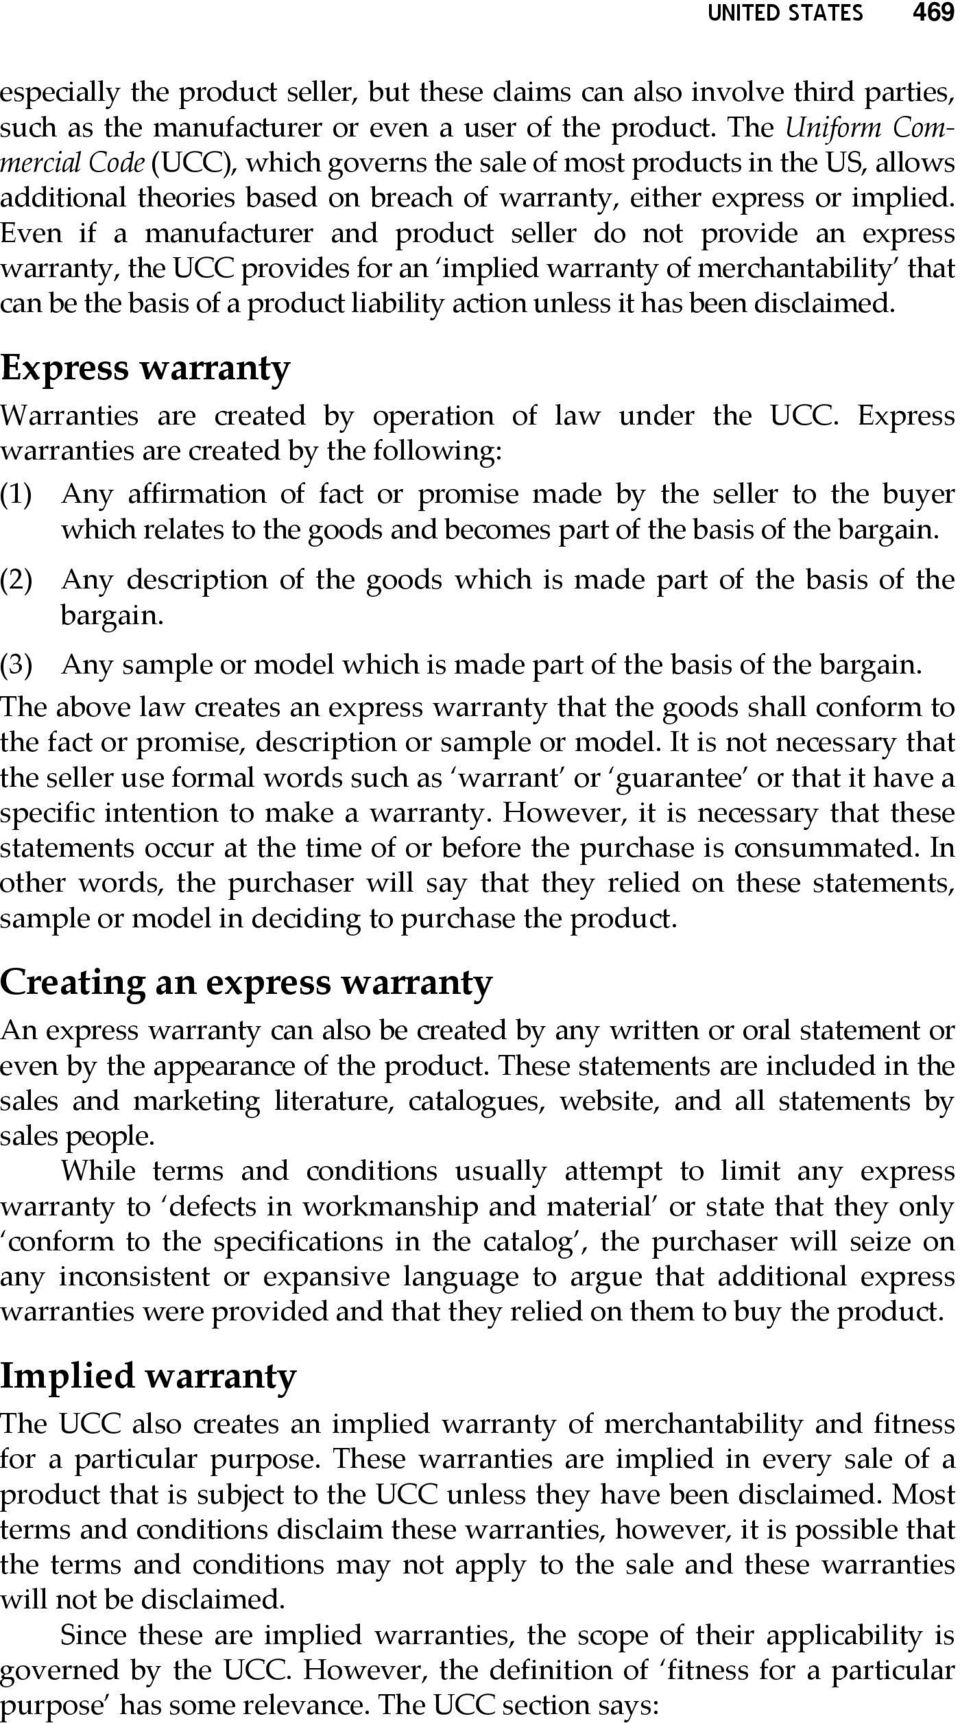 Even if a manufacturer and product seller do not provide an express warranty, the UCC provides for an implied warranty of merchantability that can be the basis of a product liability action unless it